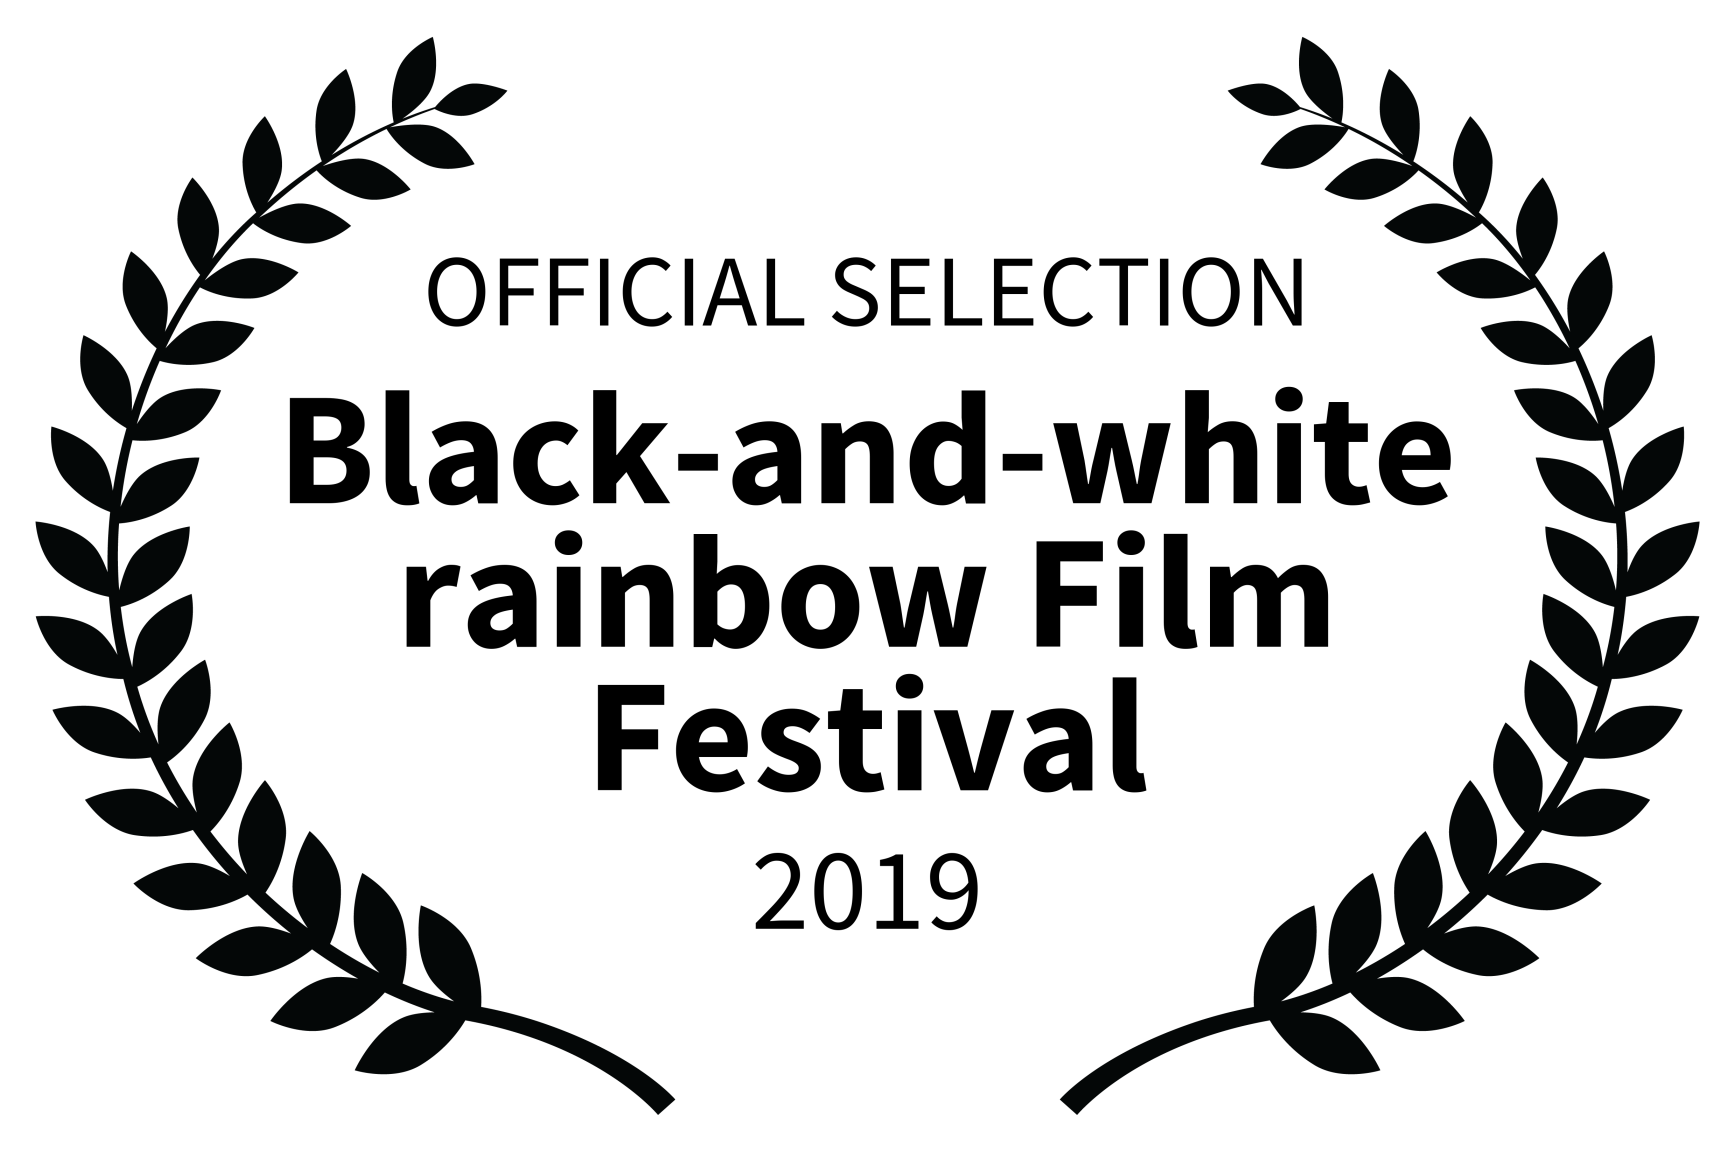 OFFICIAL SELECTION - Black-and-white rai